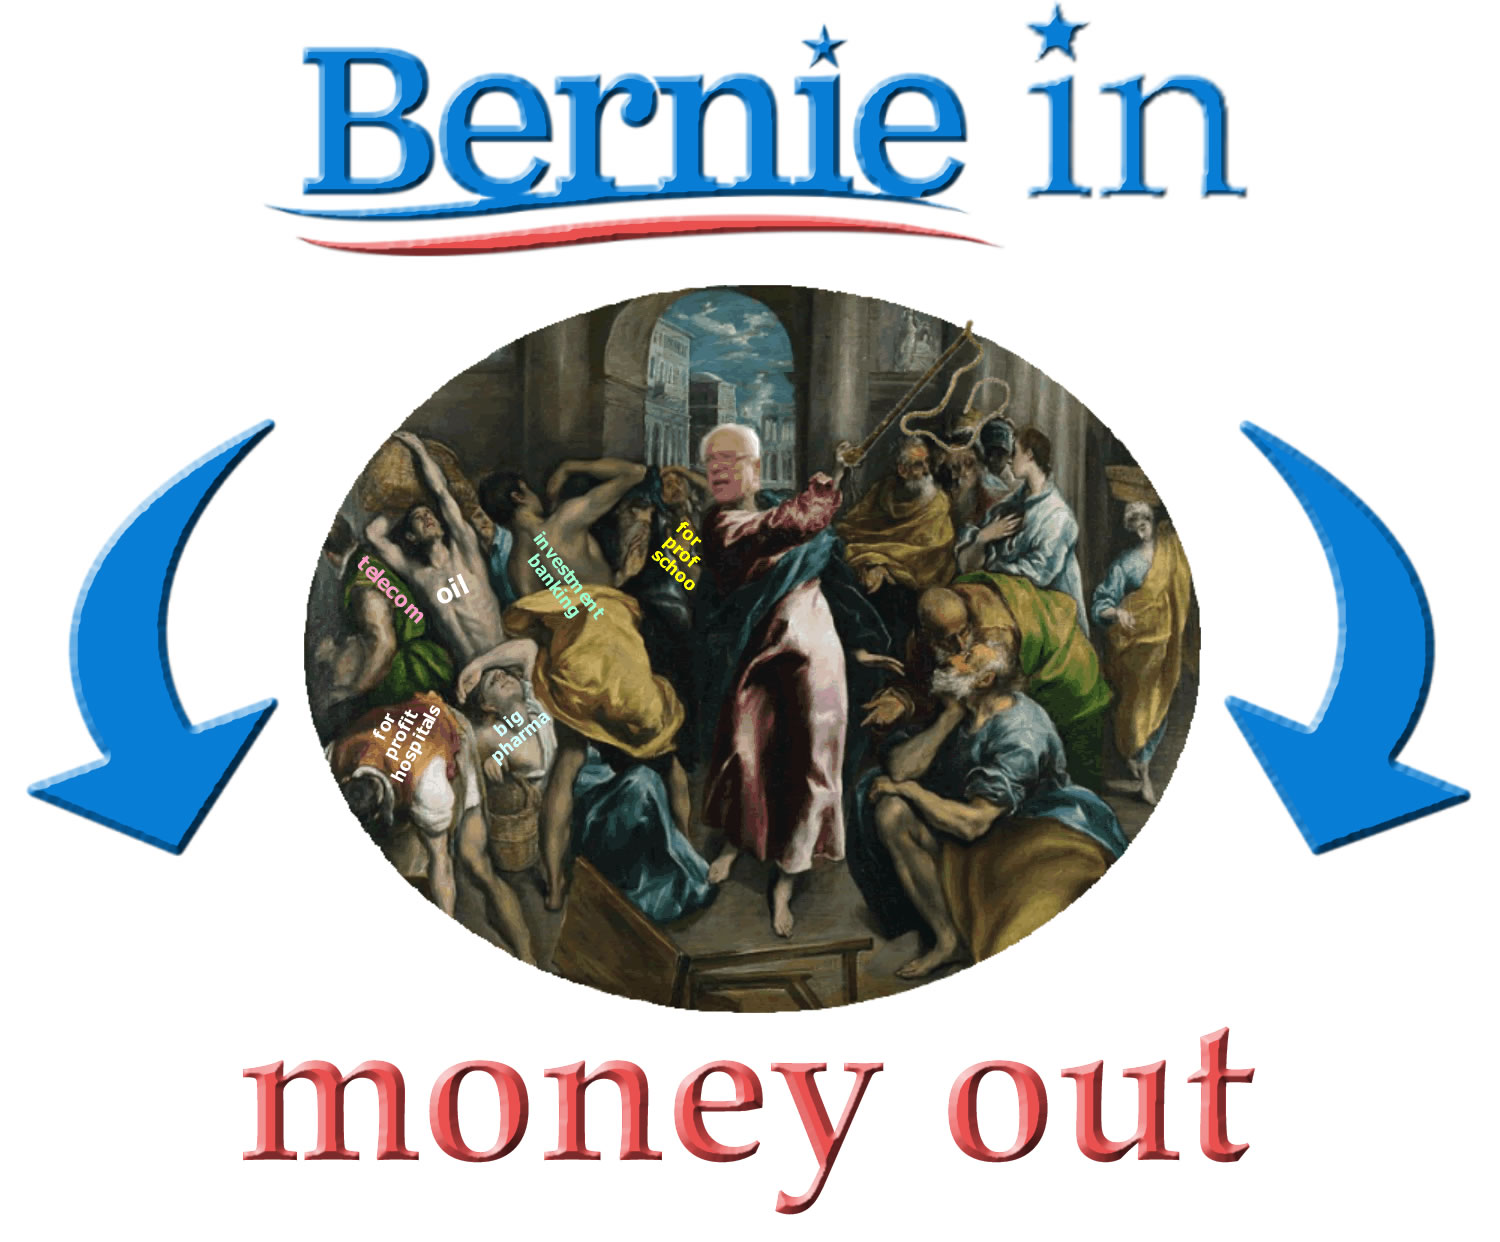 bernie_in_money_out.